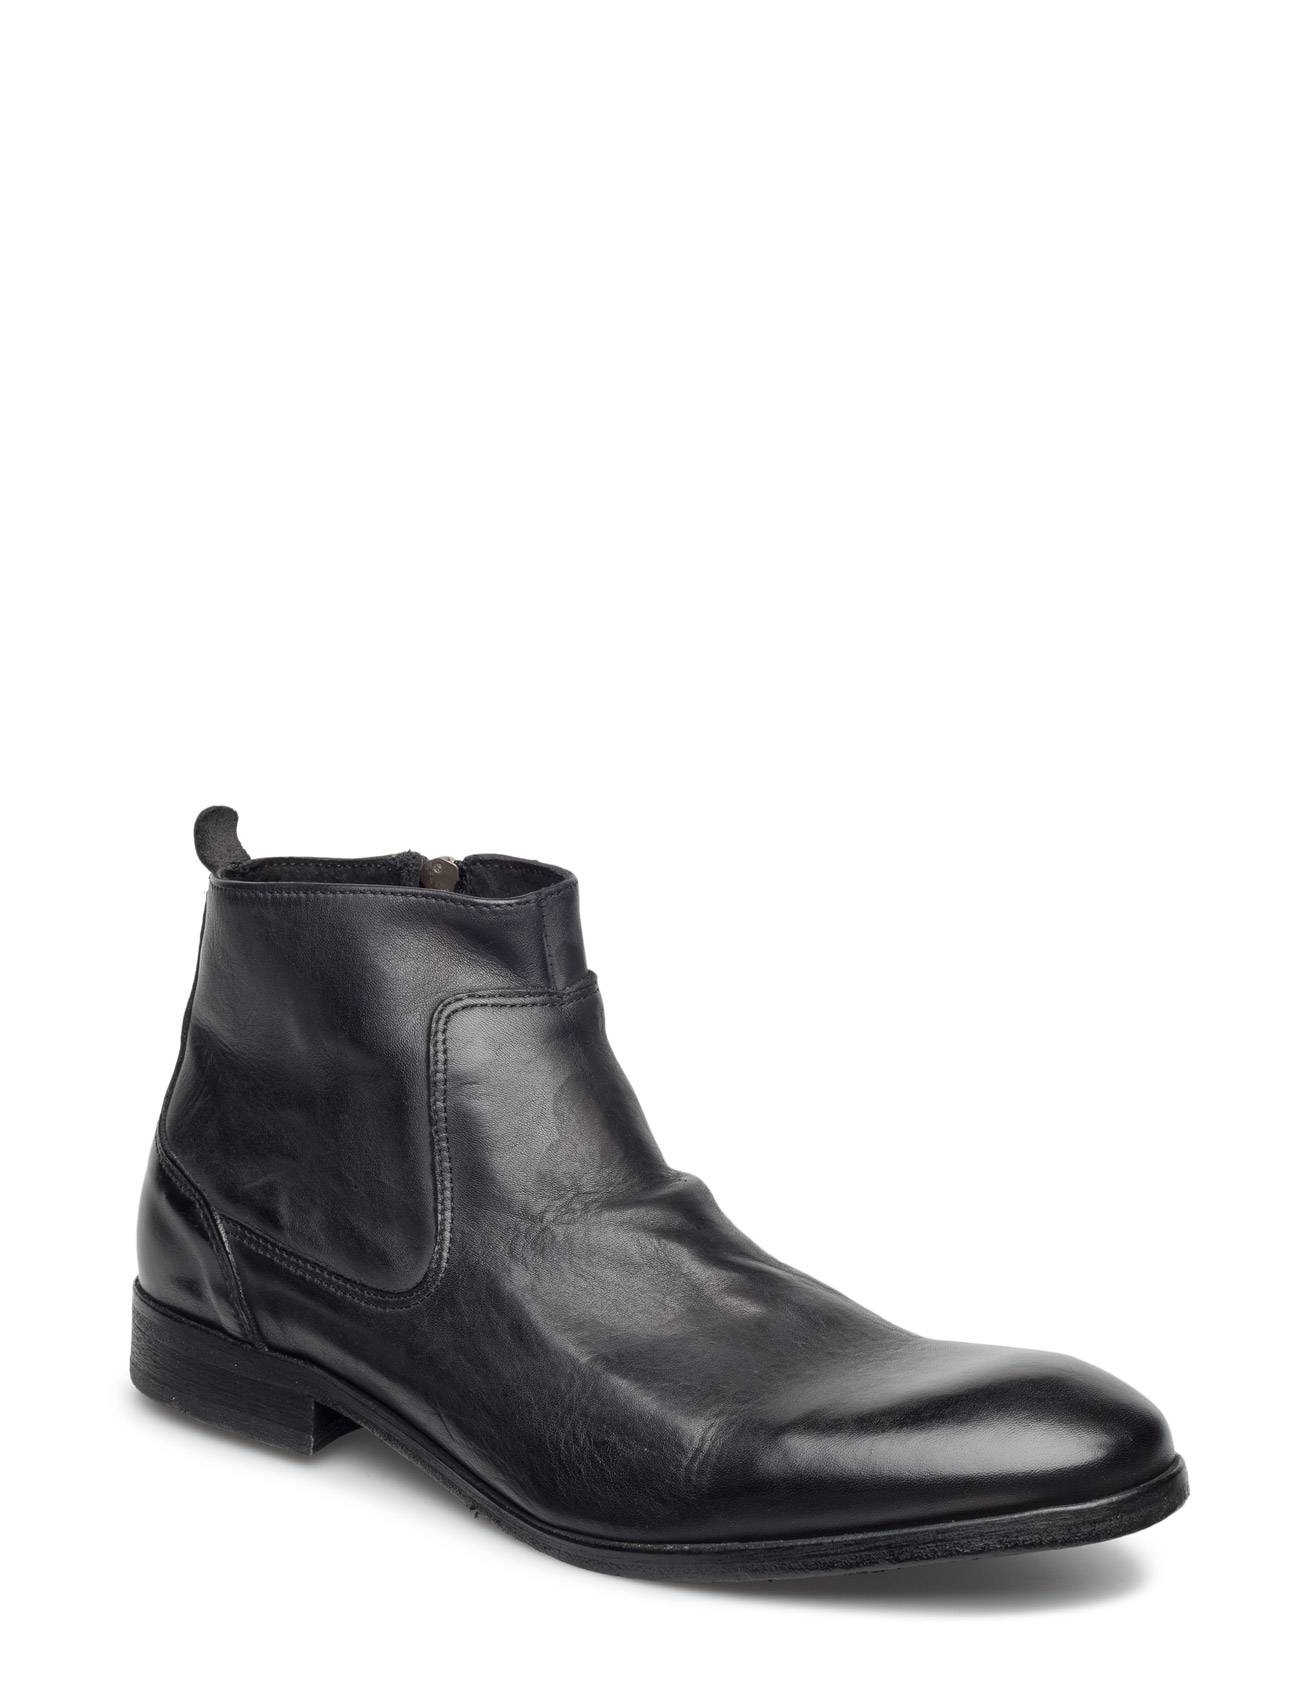 Selected Homme Shnantonio New Chelsea Boot